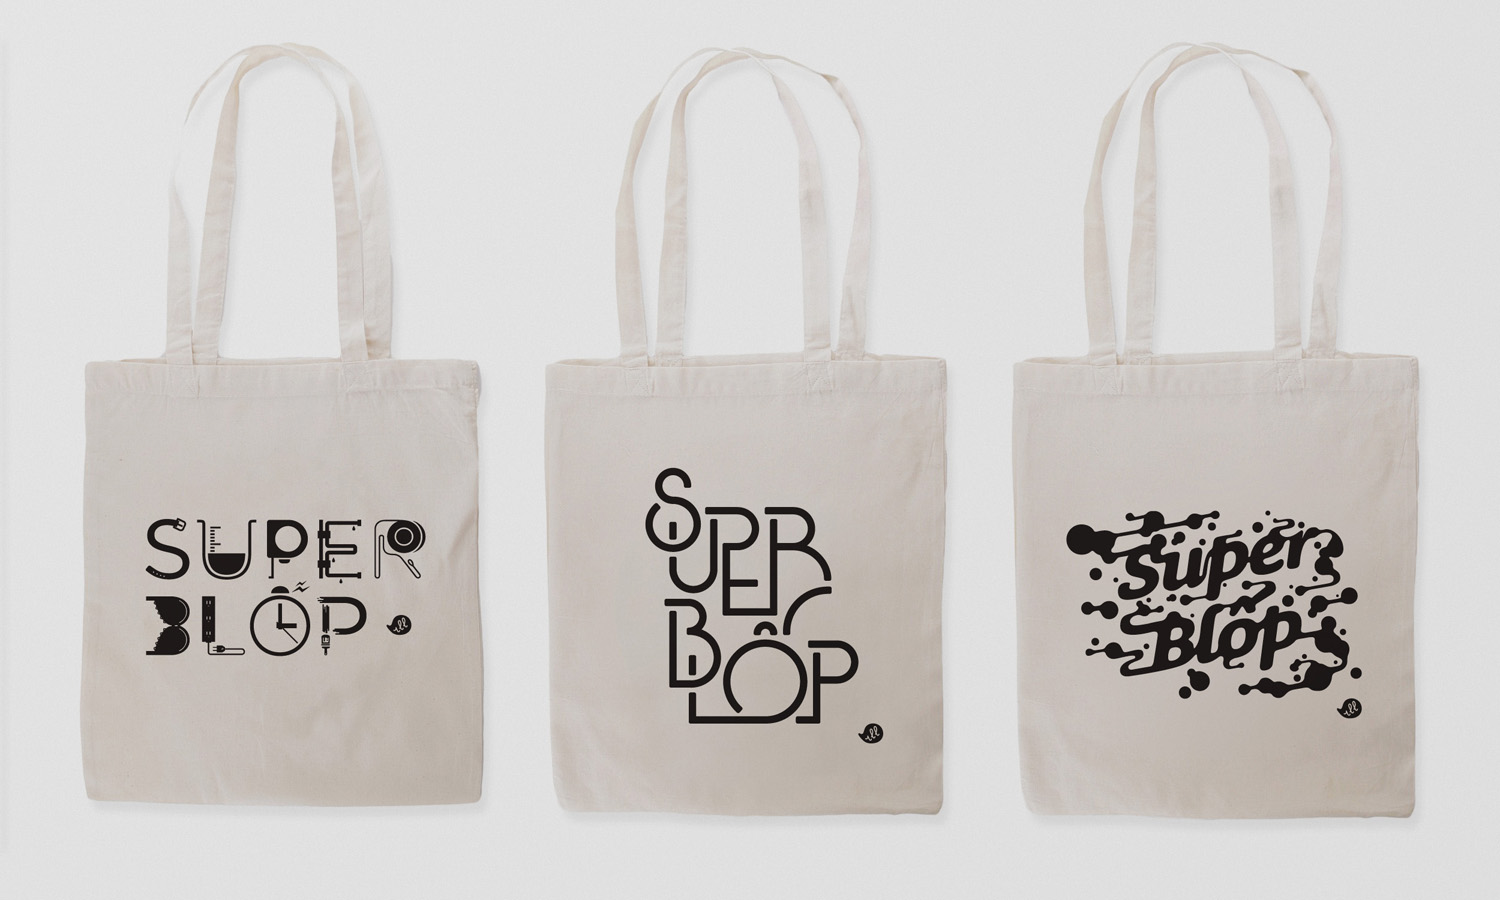 ill_03_totebags